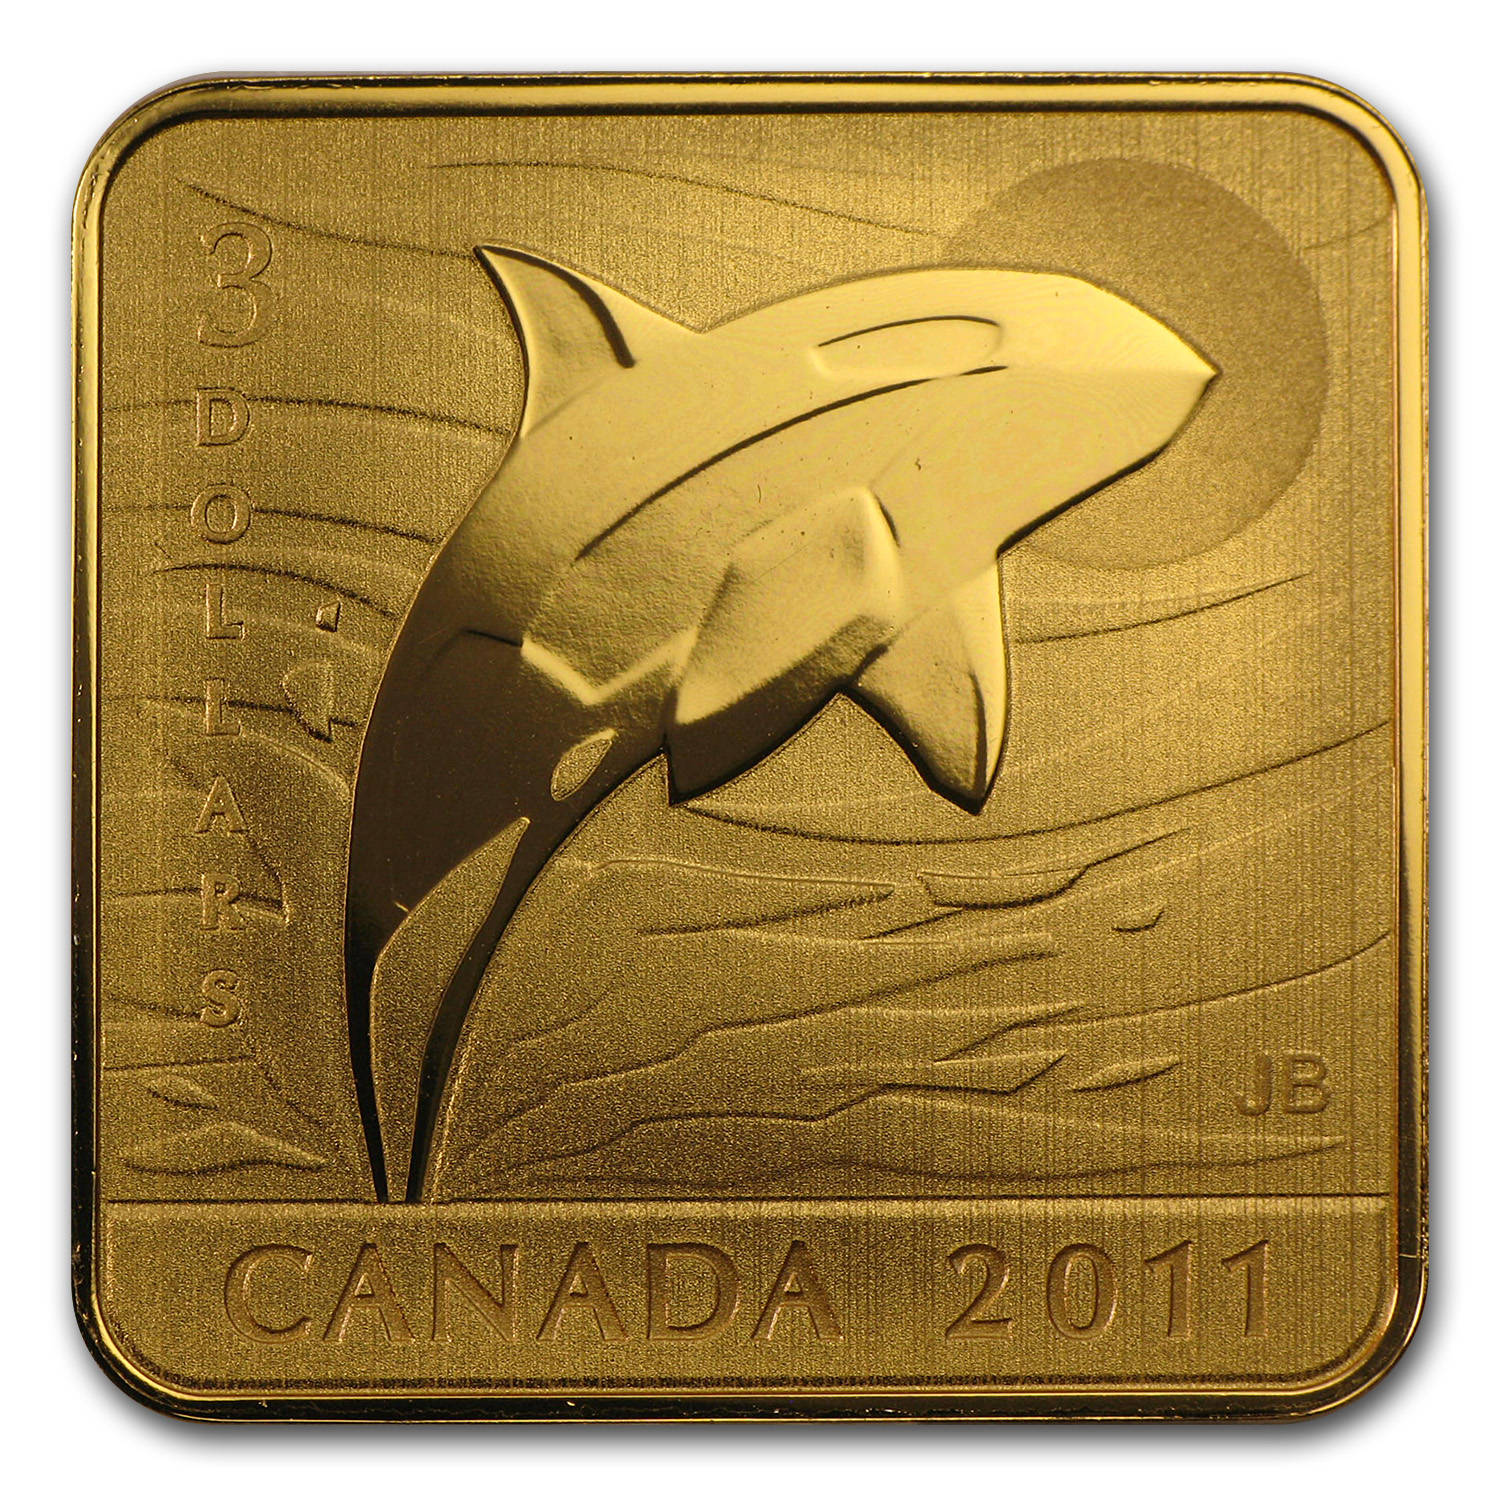 2011 Silver Canadian Wildlife Conservation Orca Whale (Gilded)